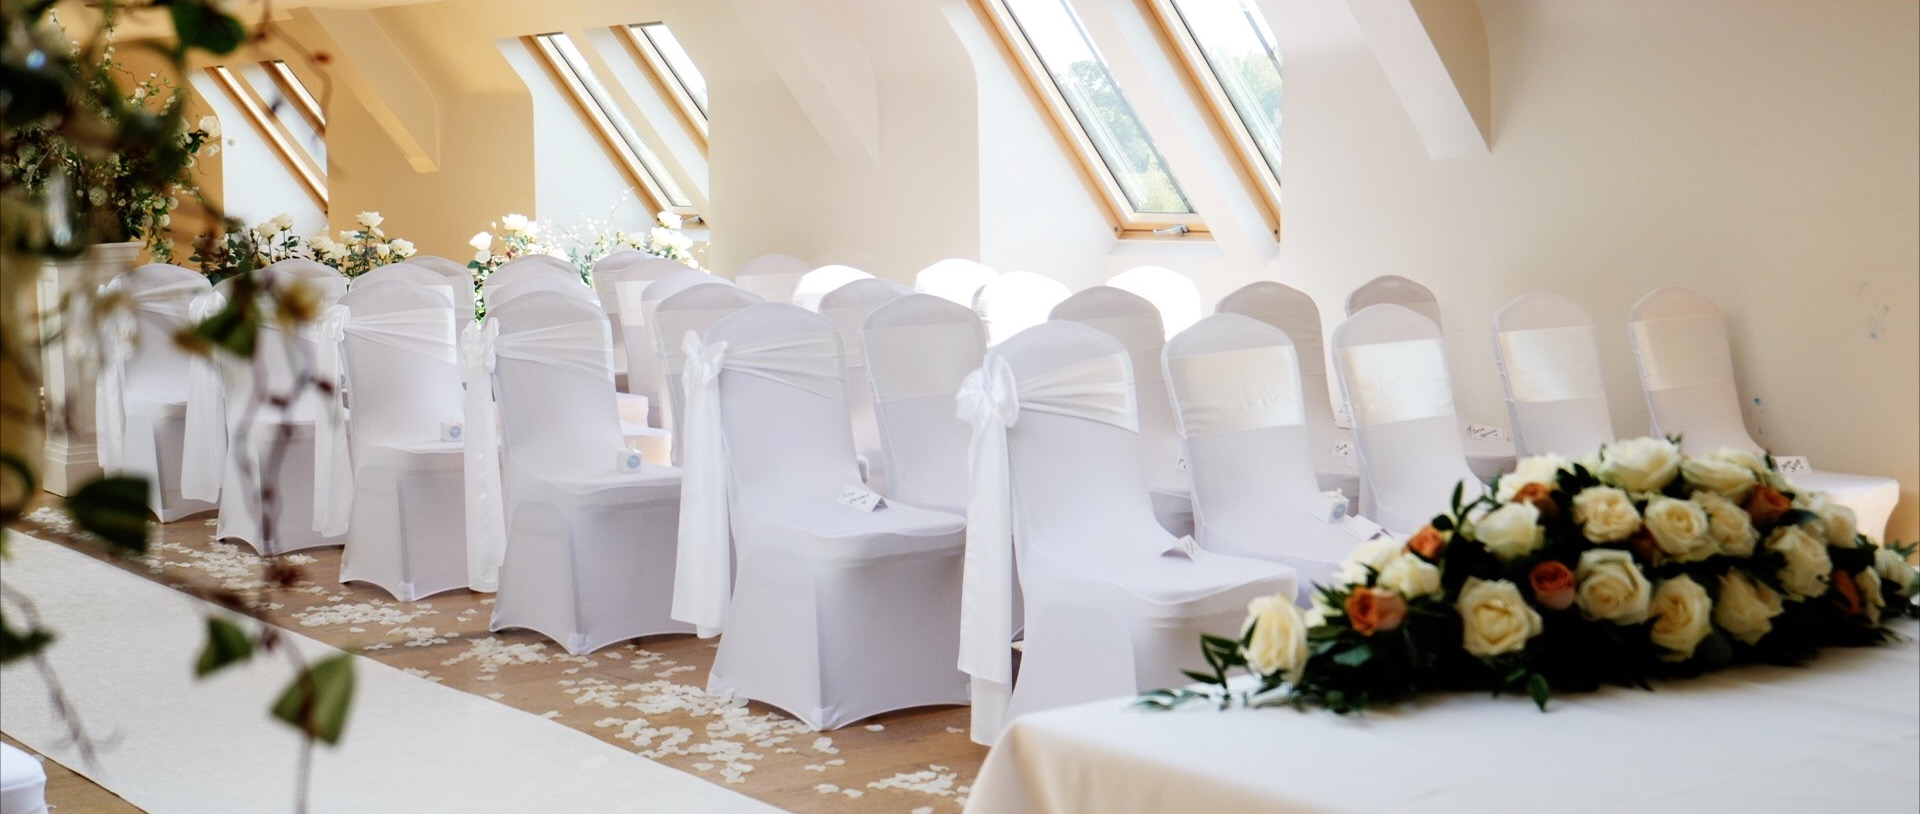 The Rayleigh Club Ceremony Room